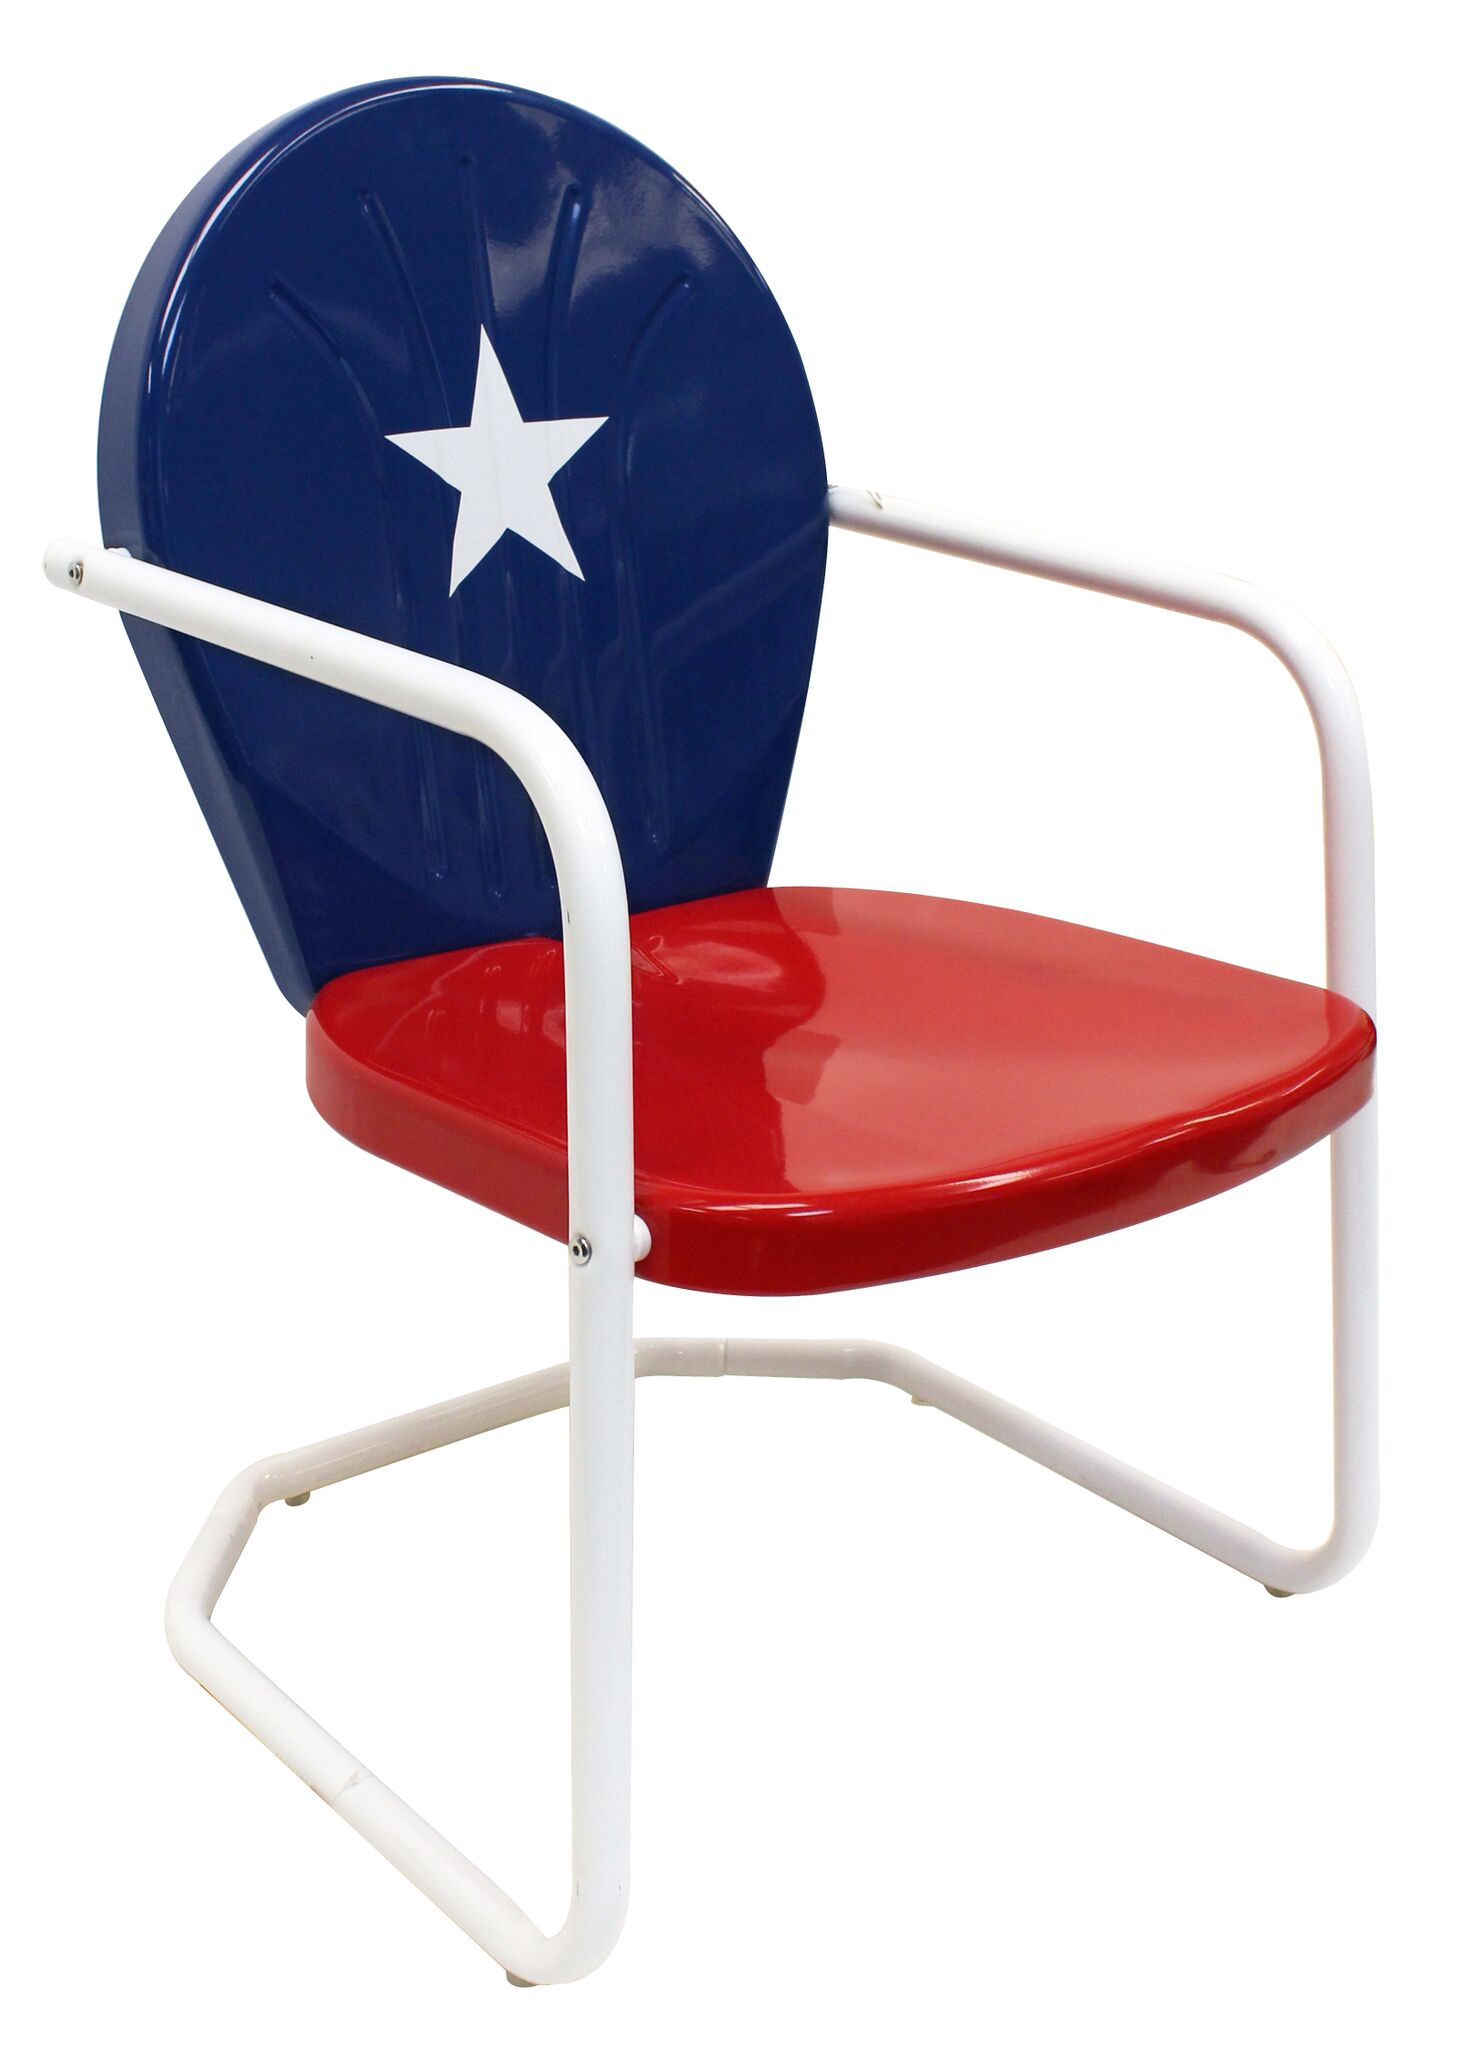 Retro Metal Texas Lawn Chair for your Texas Patio